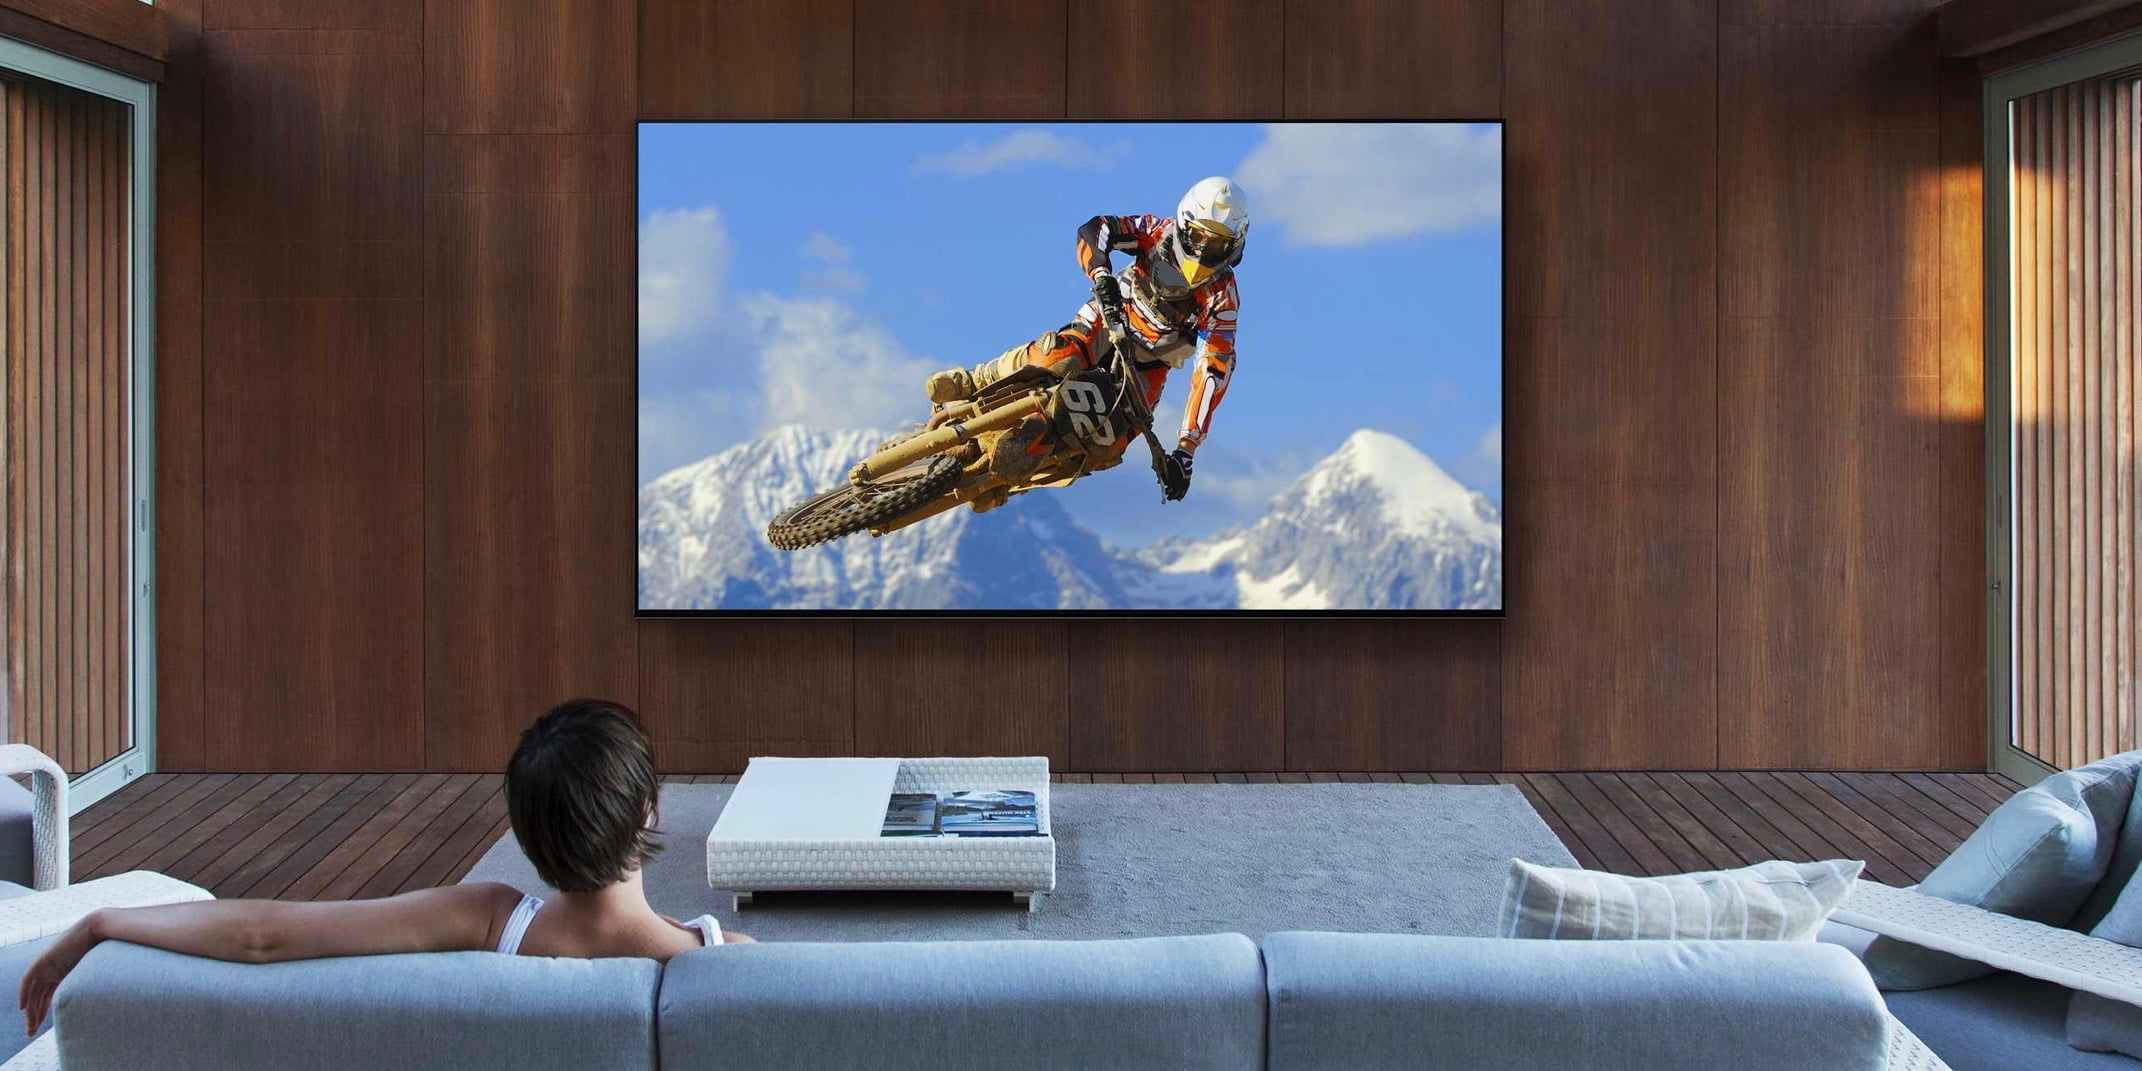 AirPlay 2 and HomeKit begin to reach Sony's first TVs